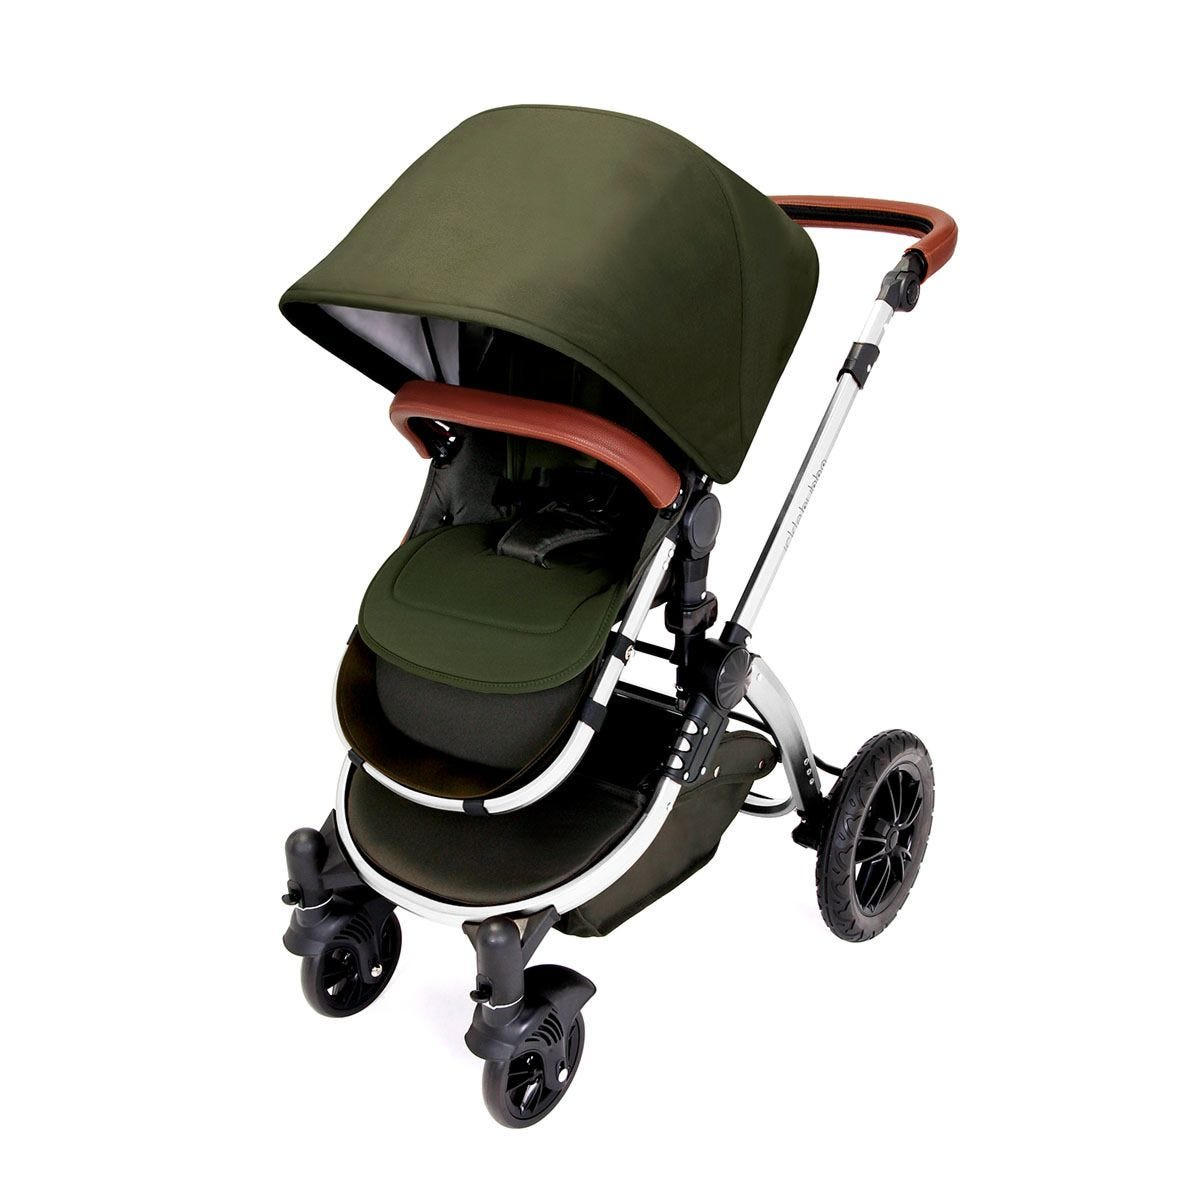 Ickle Bubba Stomp V4 2 in 1 Pushchair - Woodland on Chrome with Tan Handles